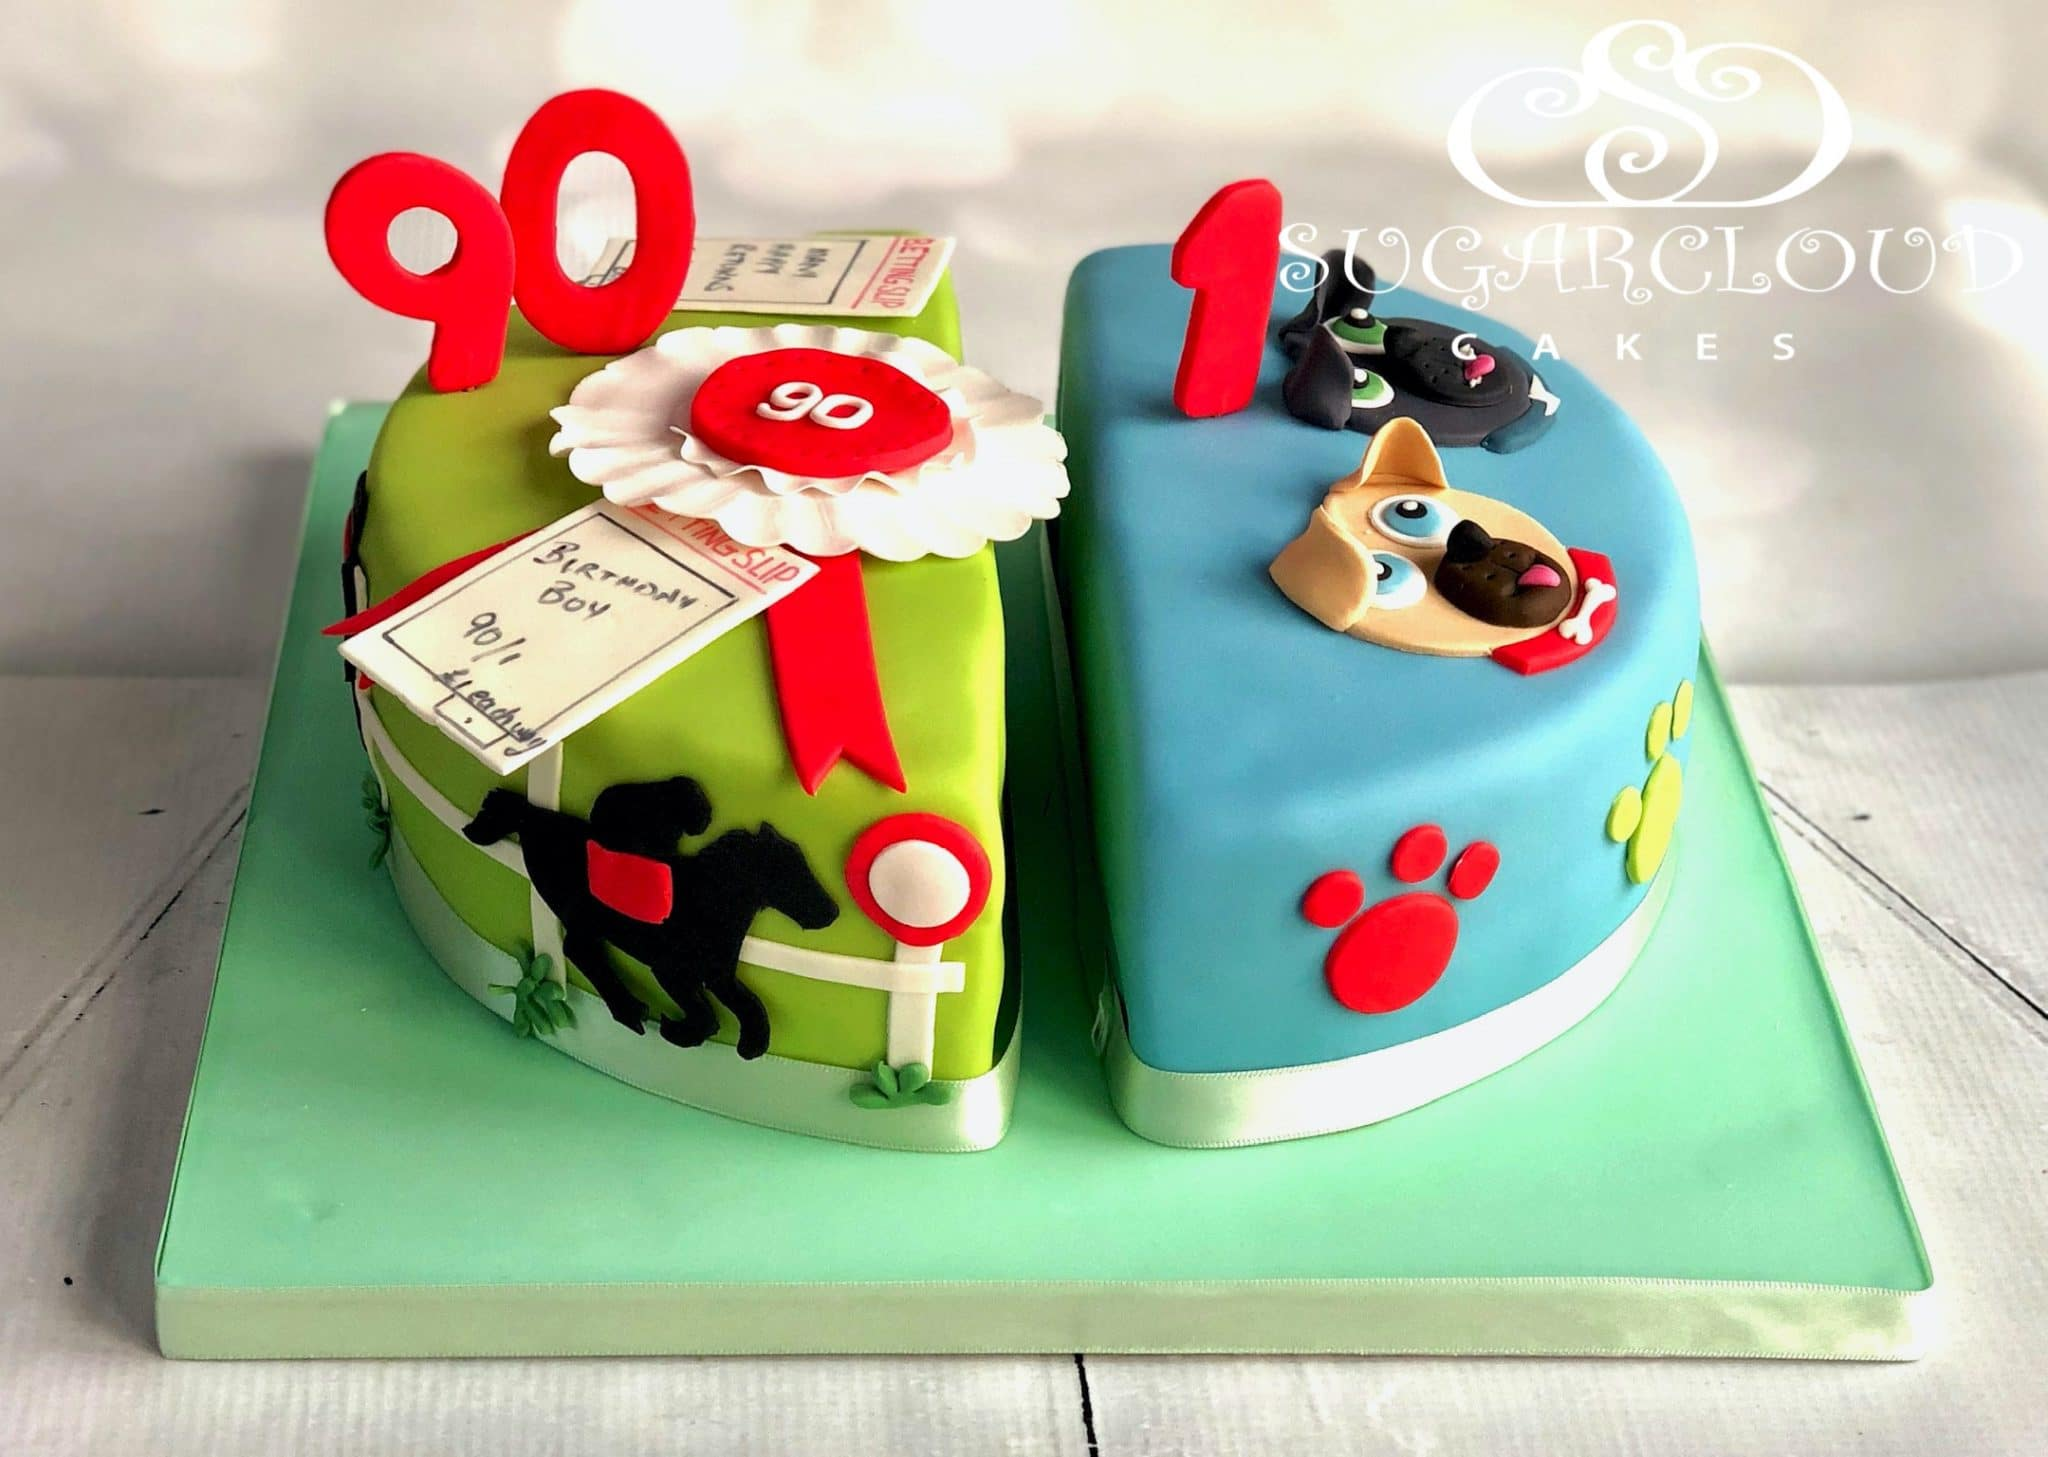 A Dual Birthday Cake for a 90th and a 1st Birthday